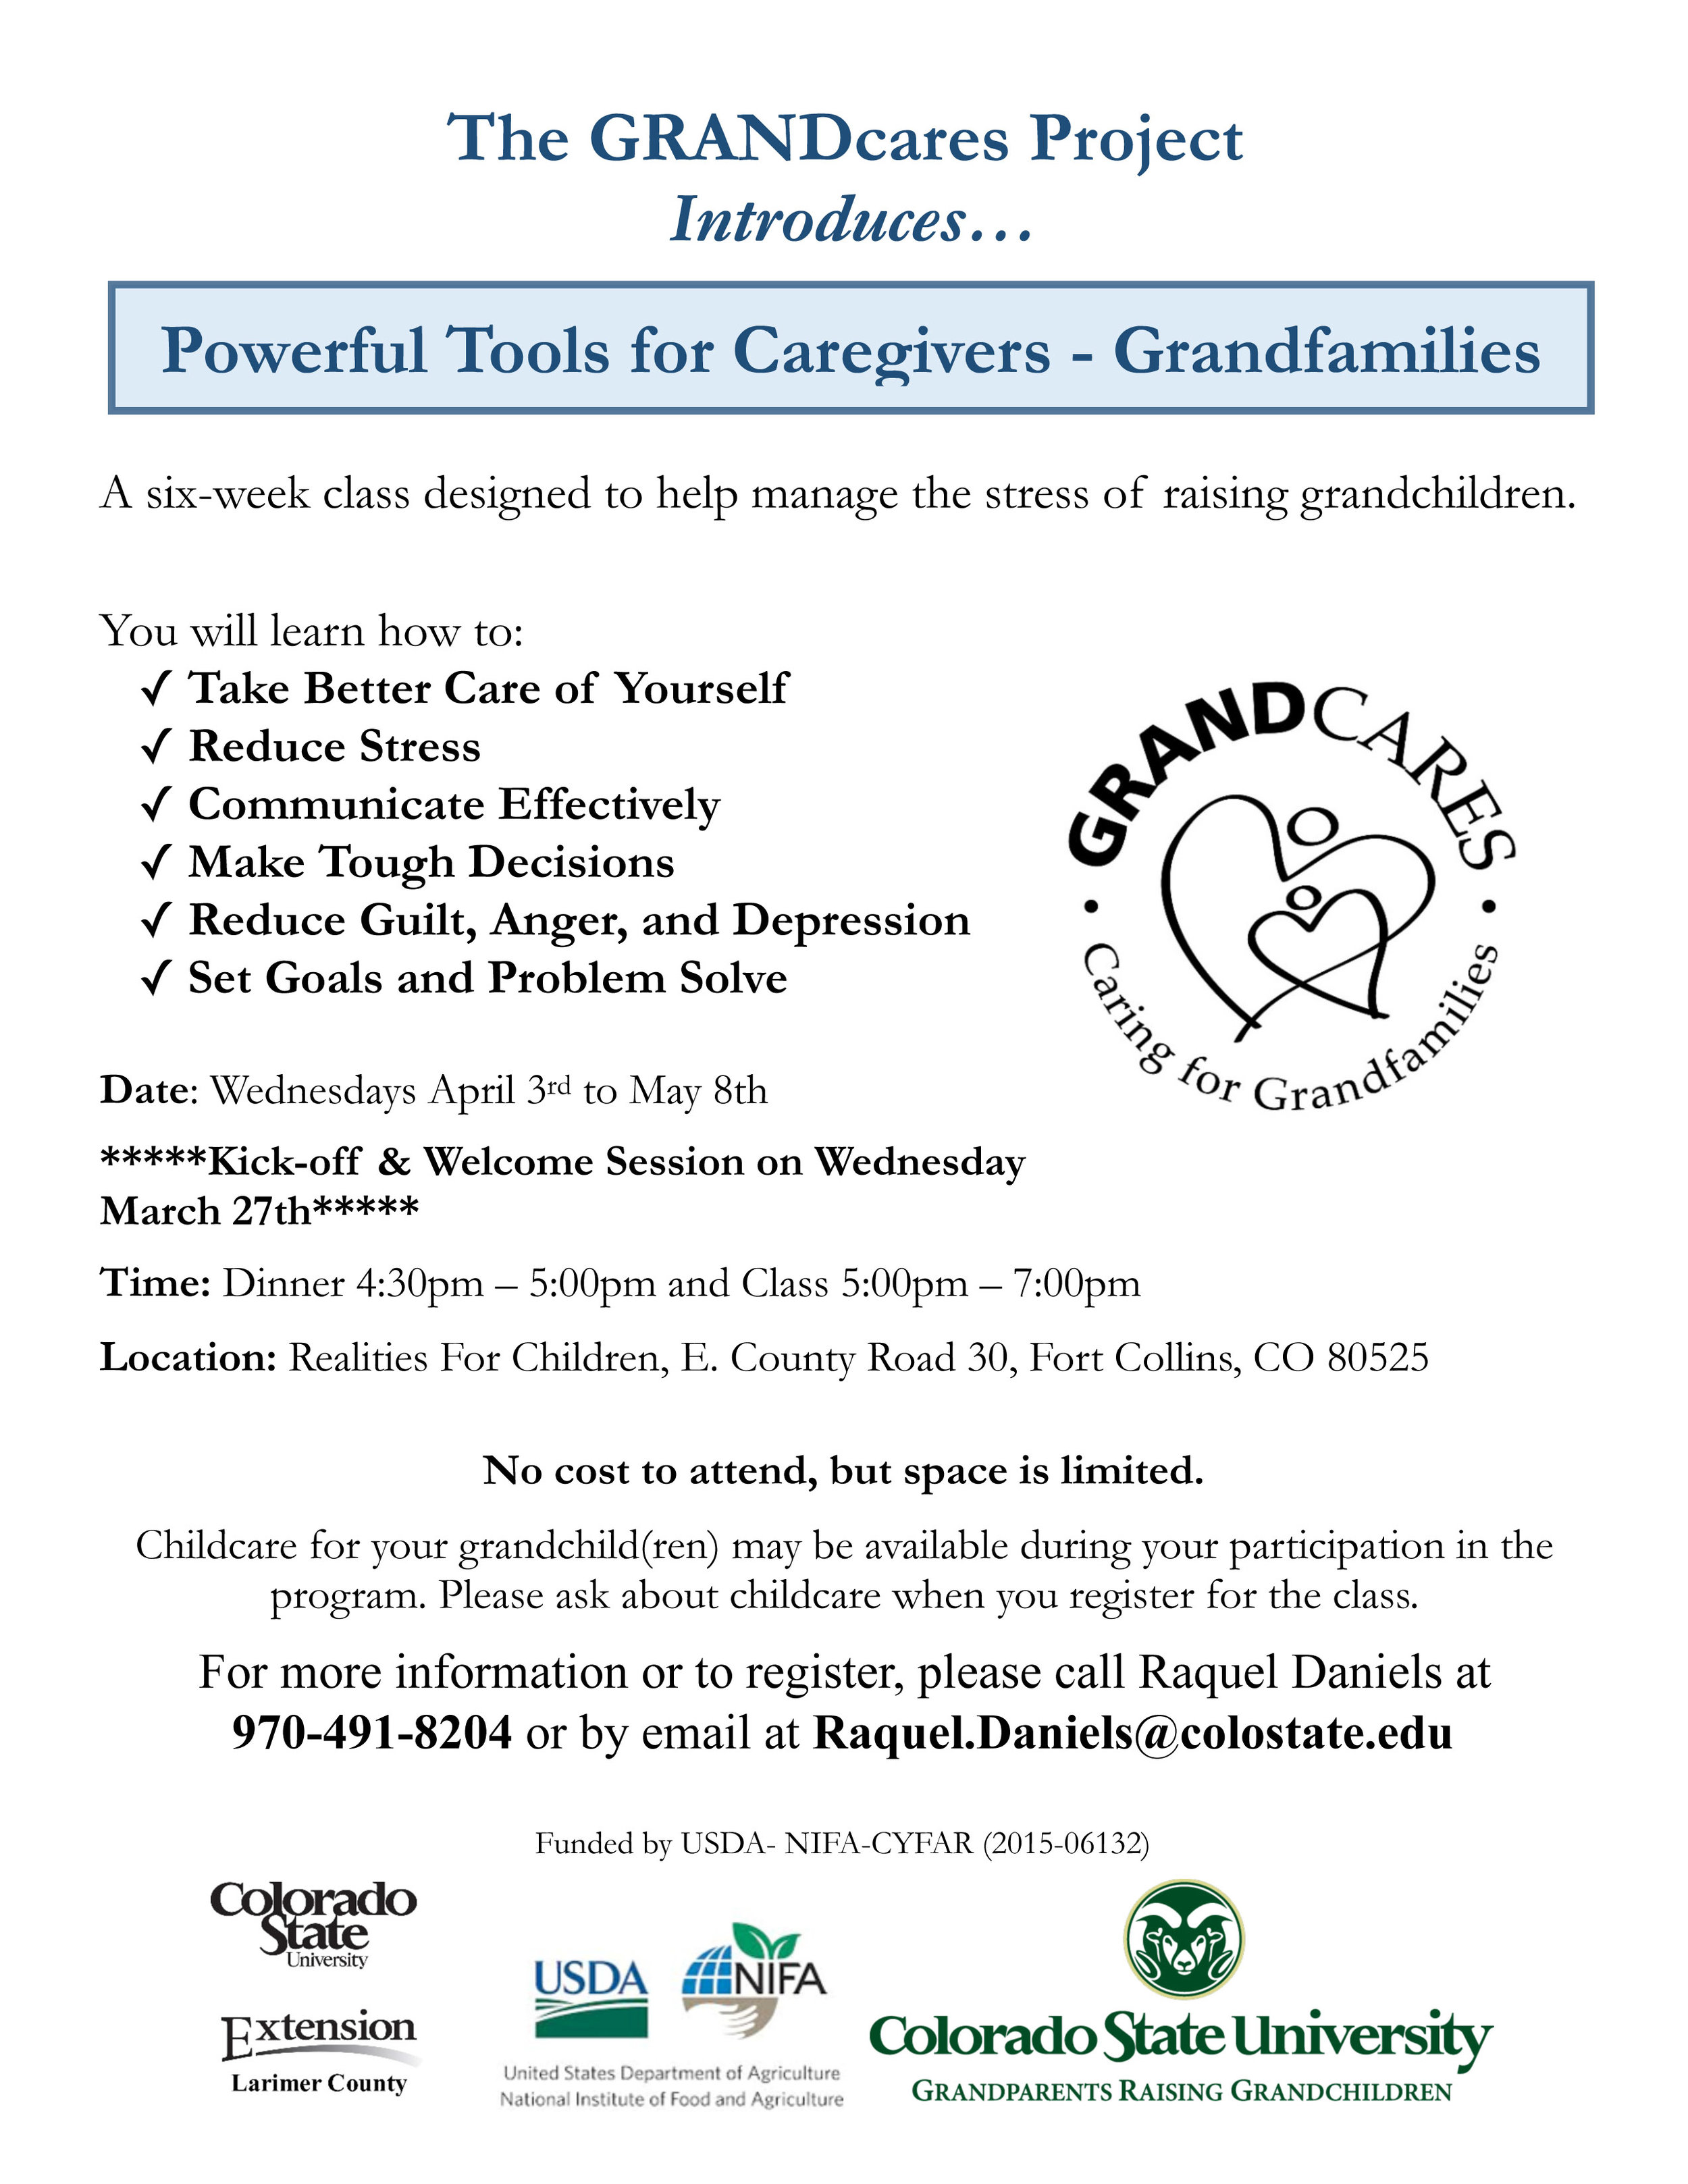 GrandCares Project flyer 3-19.jpg